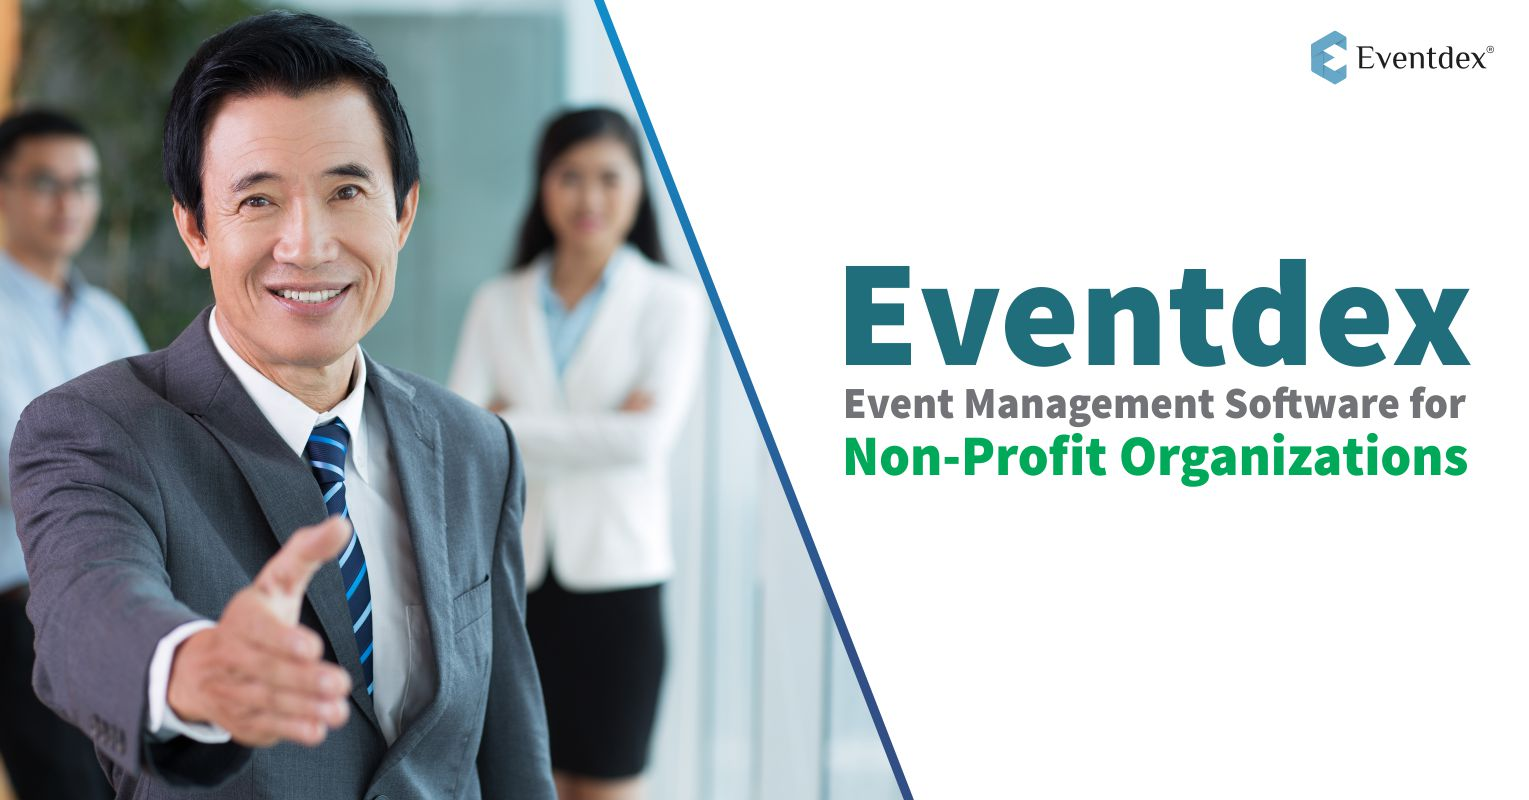 Eventdex event management software for non-profits is a customizable solution allowing you...